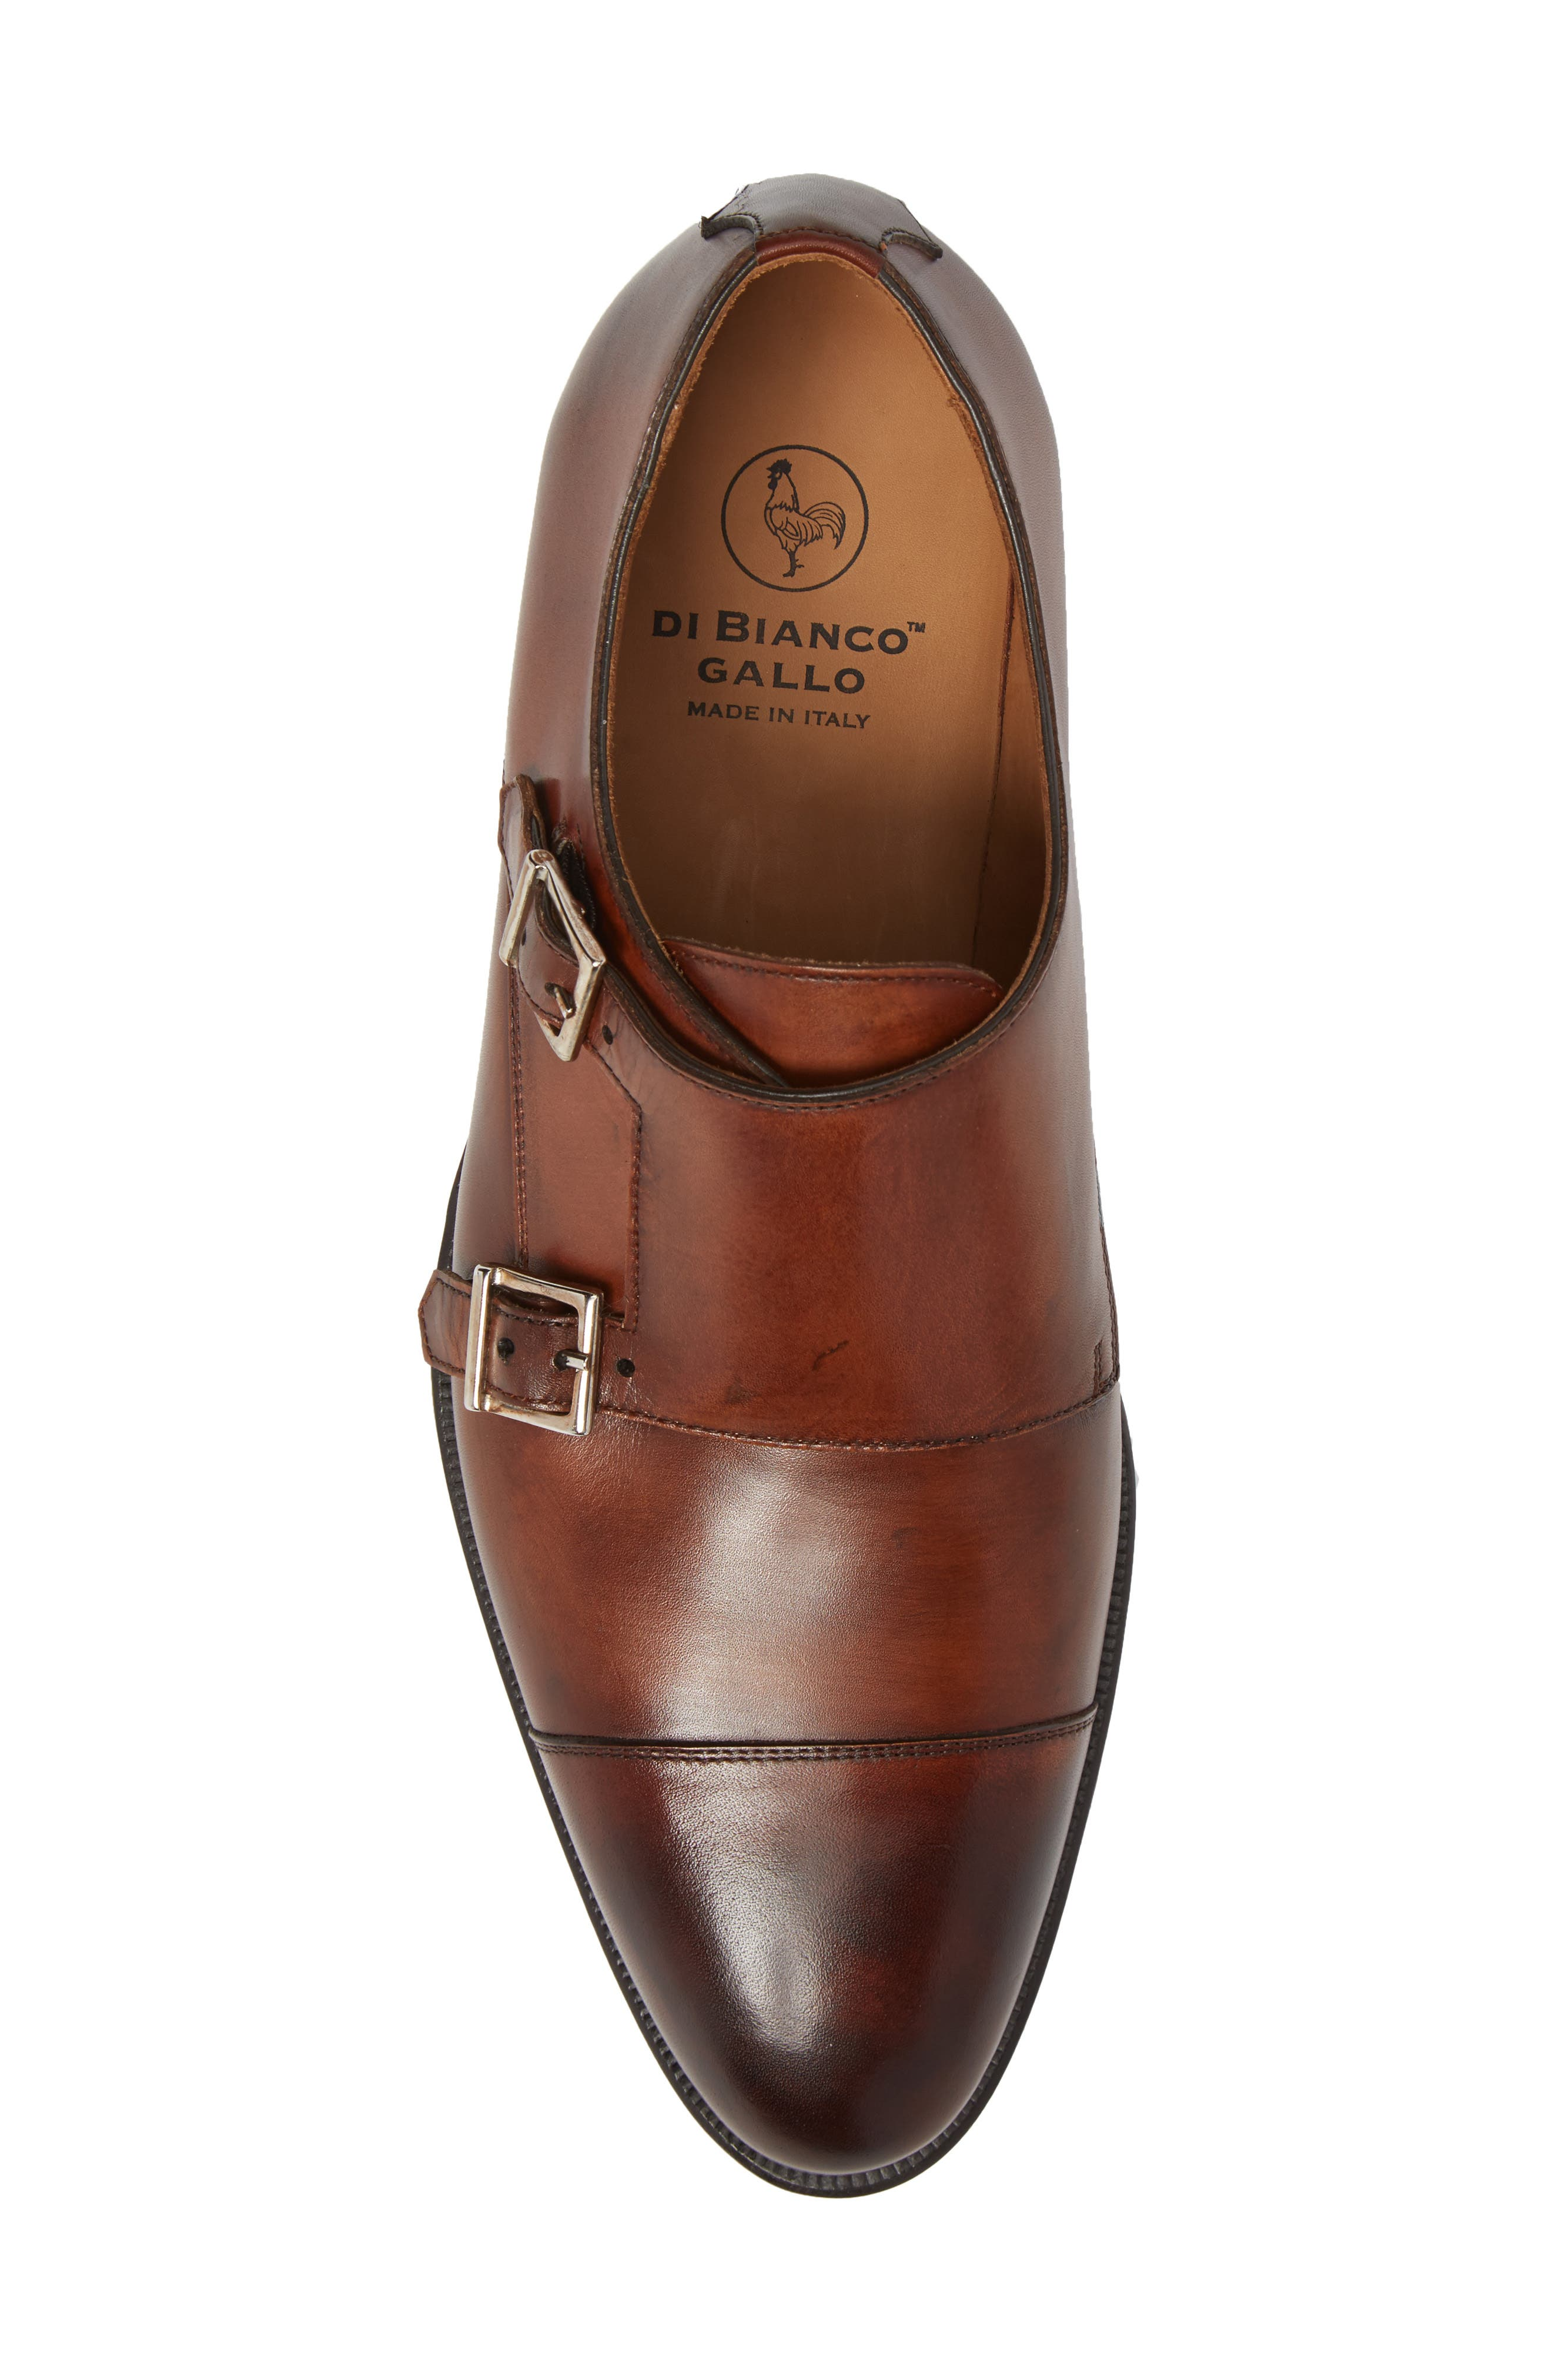 Gallo Bianco Double Monk Strap Shoe,                             Alternate thumbnail 5, color,                             Marble Brown